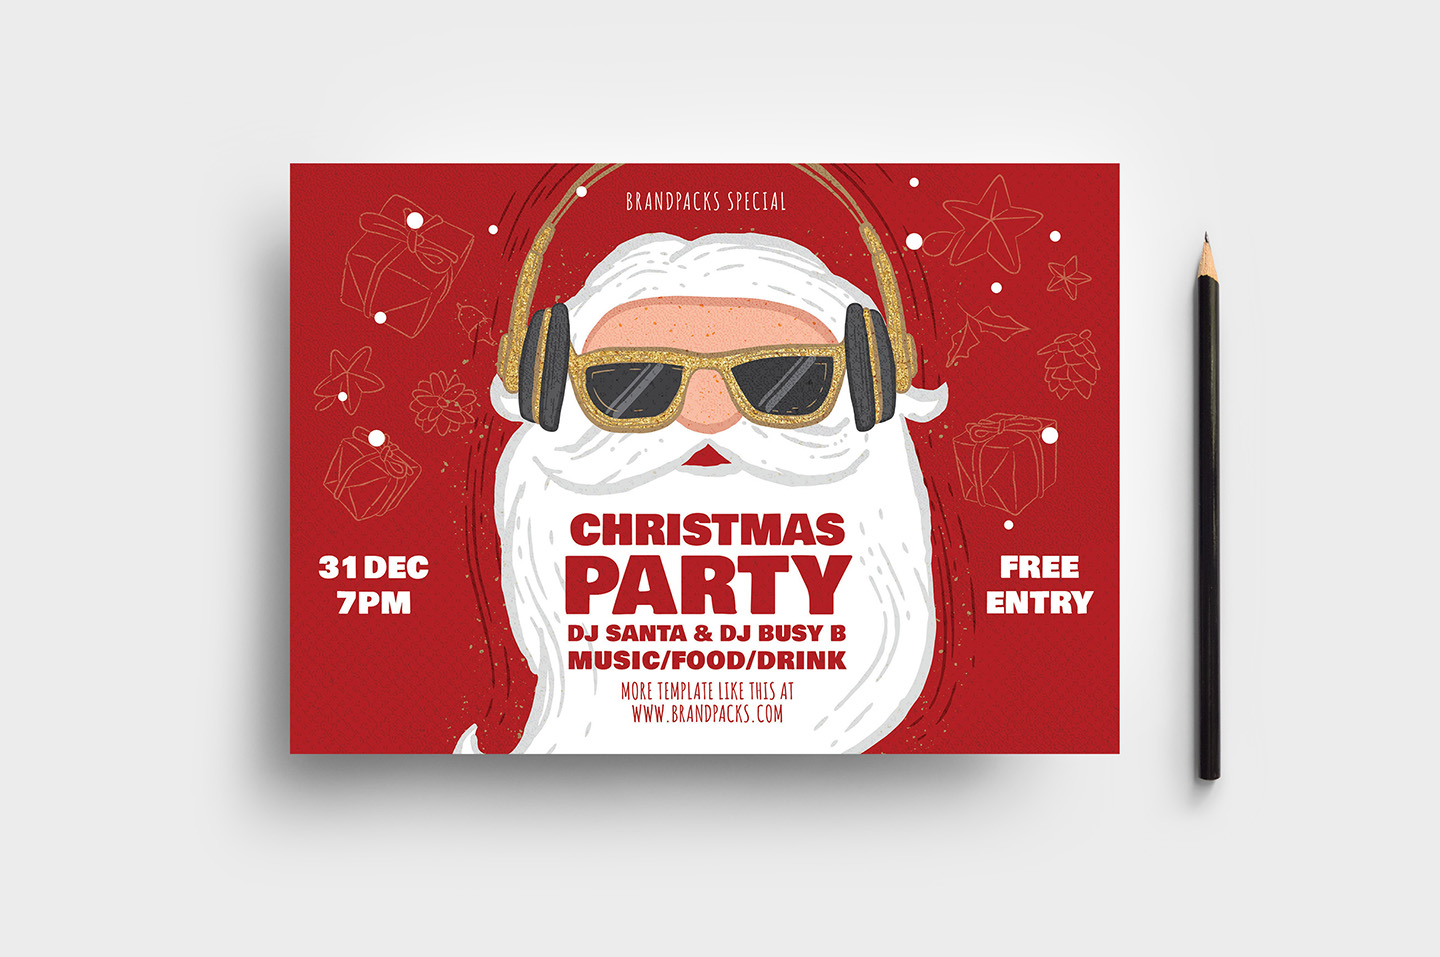 Christmas Party Flyer.Christmas Party Flyer